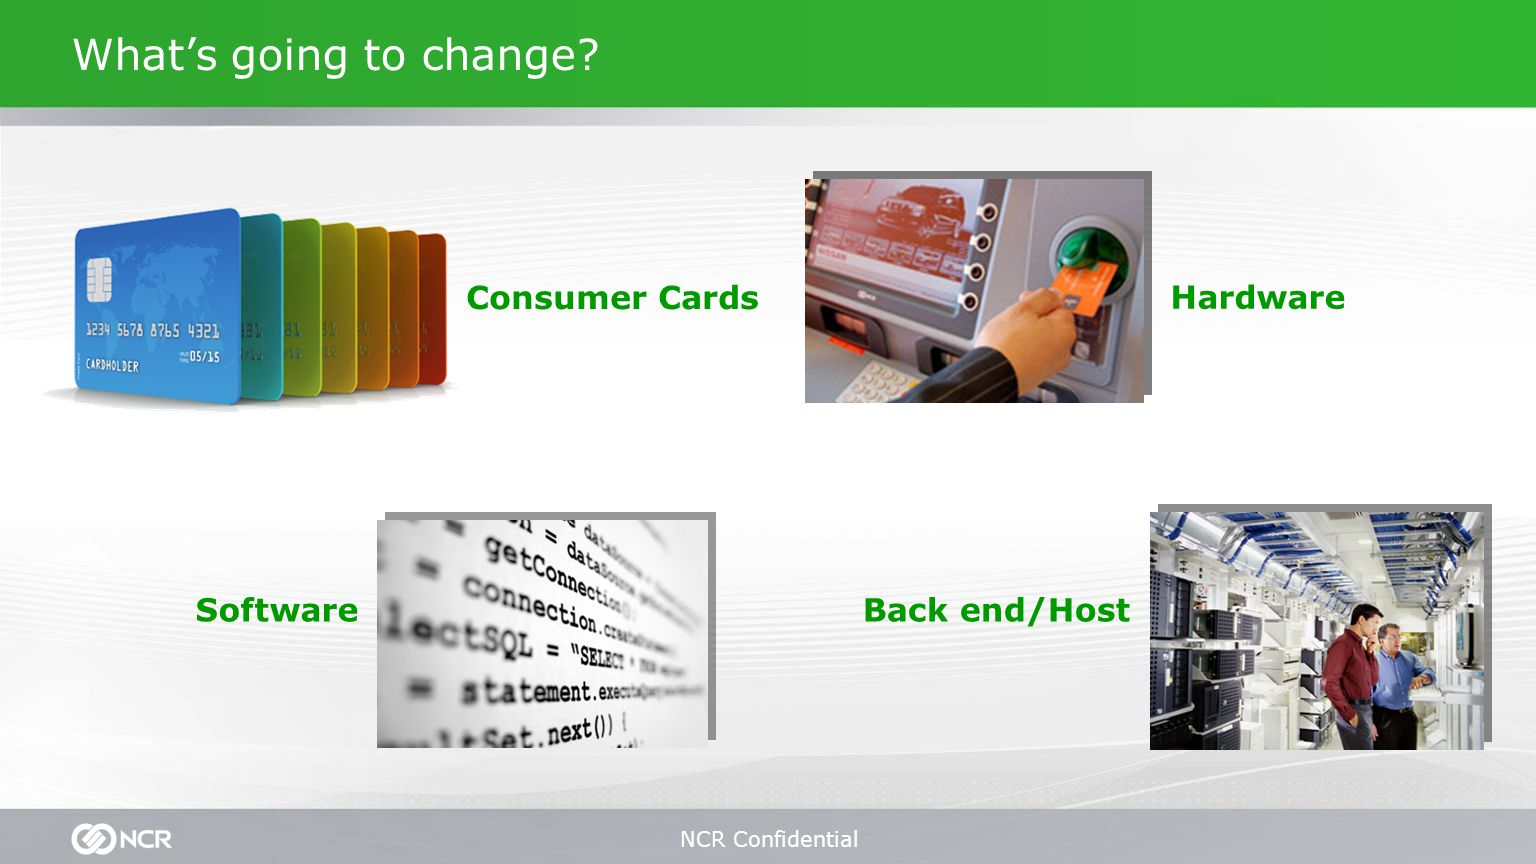 NCR Confidential What's going to change Consumer Cards Hardware SoftwareBack end/Host